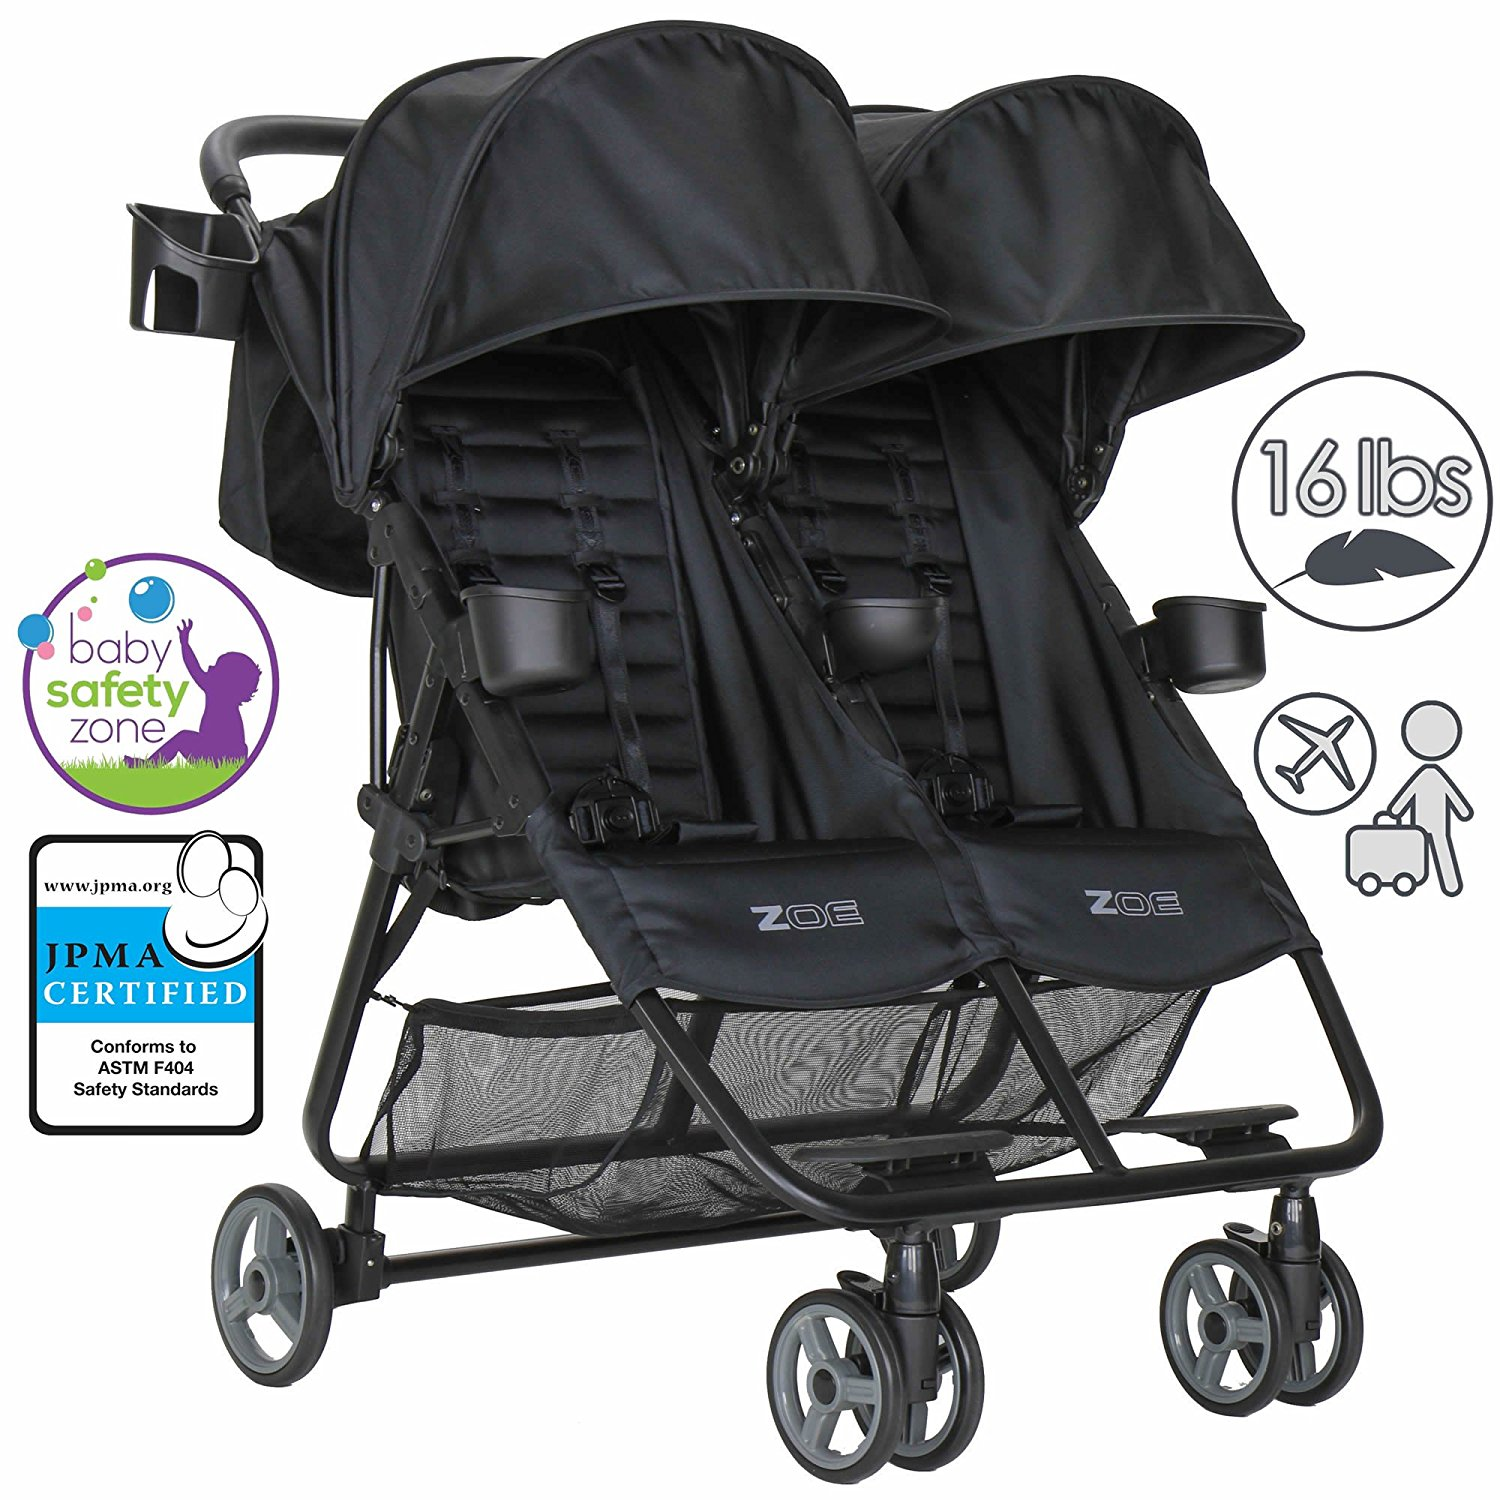 Maclaren Stroller Uk Reviews Best Strollers For Big Kids The Ultimate Guide Of 2019